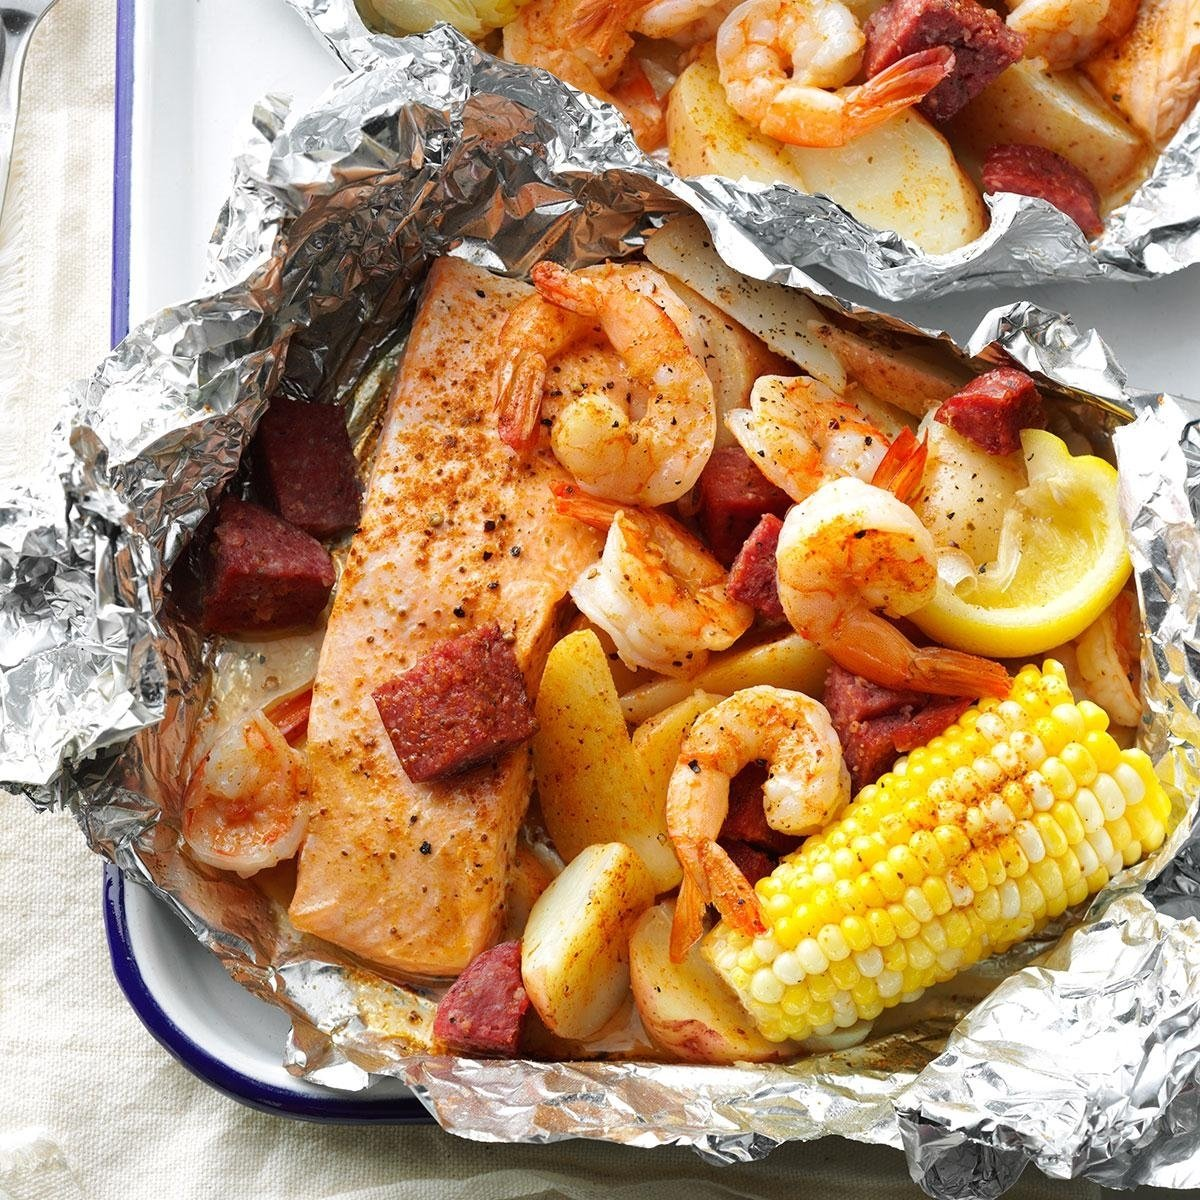 10 Best Dinner Ideas On The Grill cajun boil on the grill recipe taste of home 1